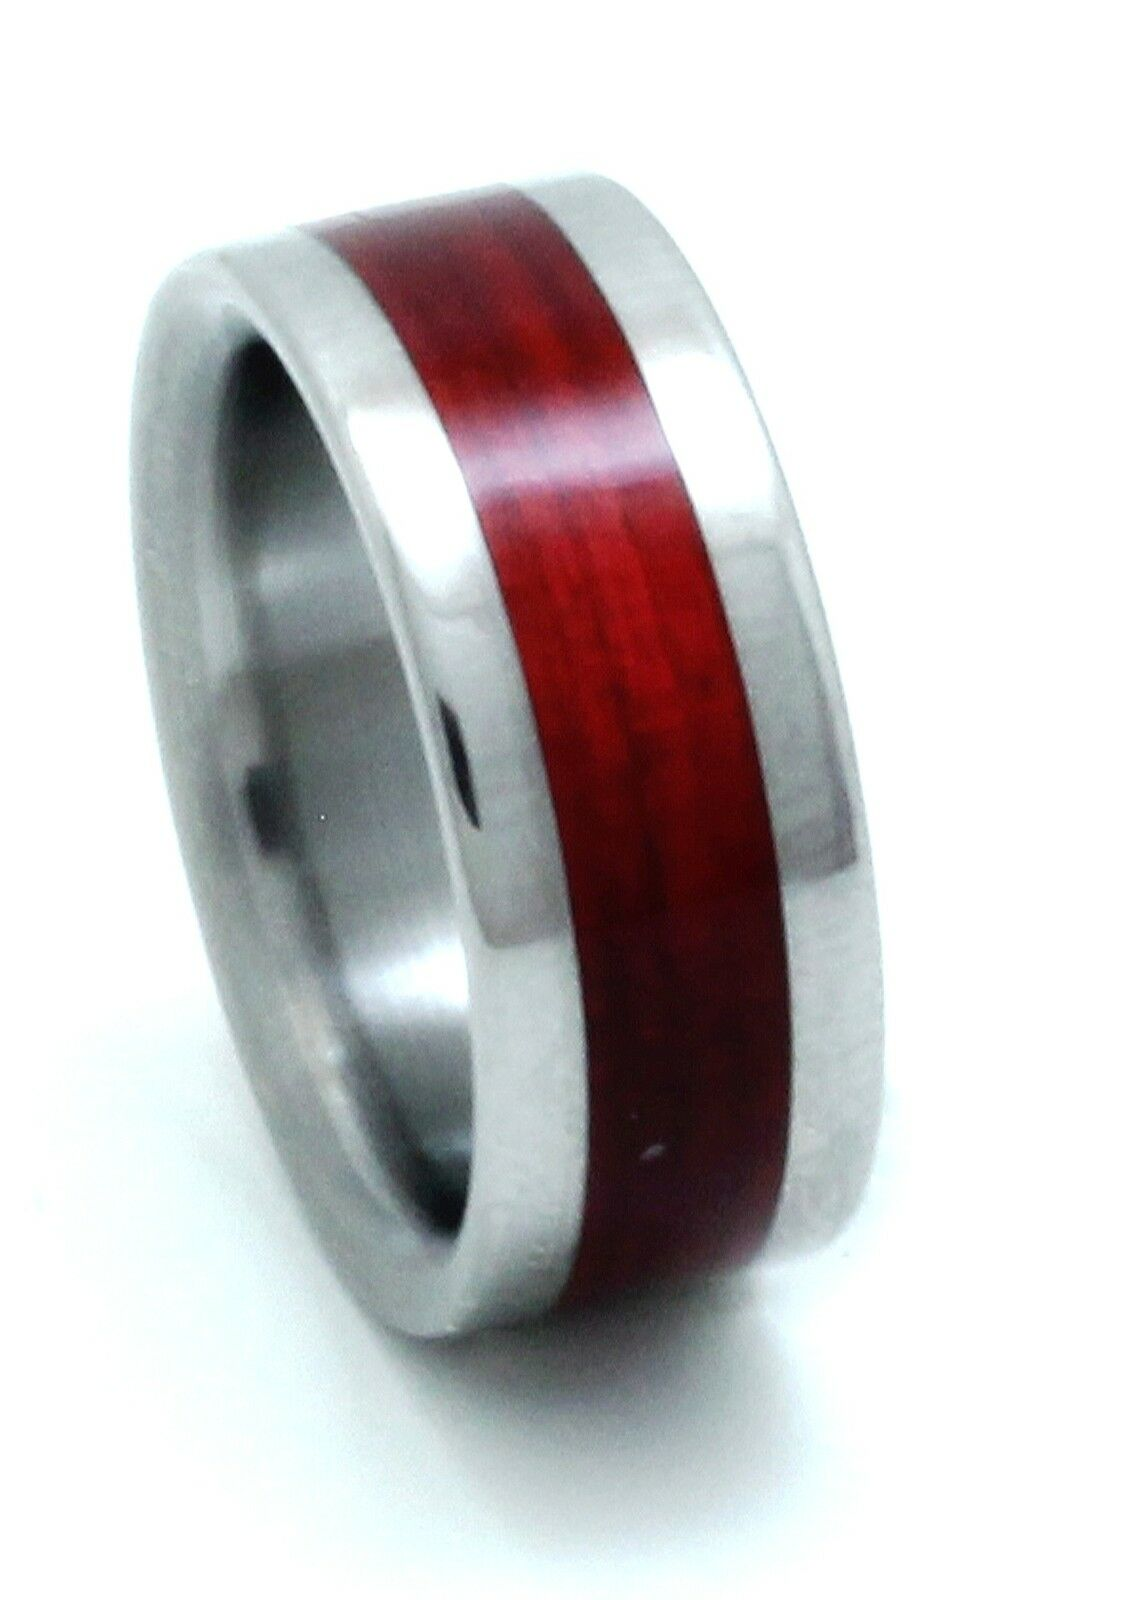 Titanium Ring With Red Heart Wood Inlay - FREE Ring Box